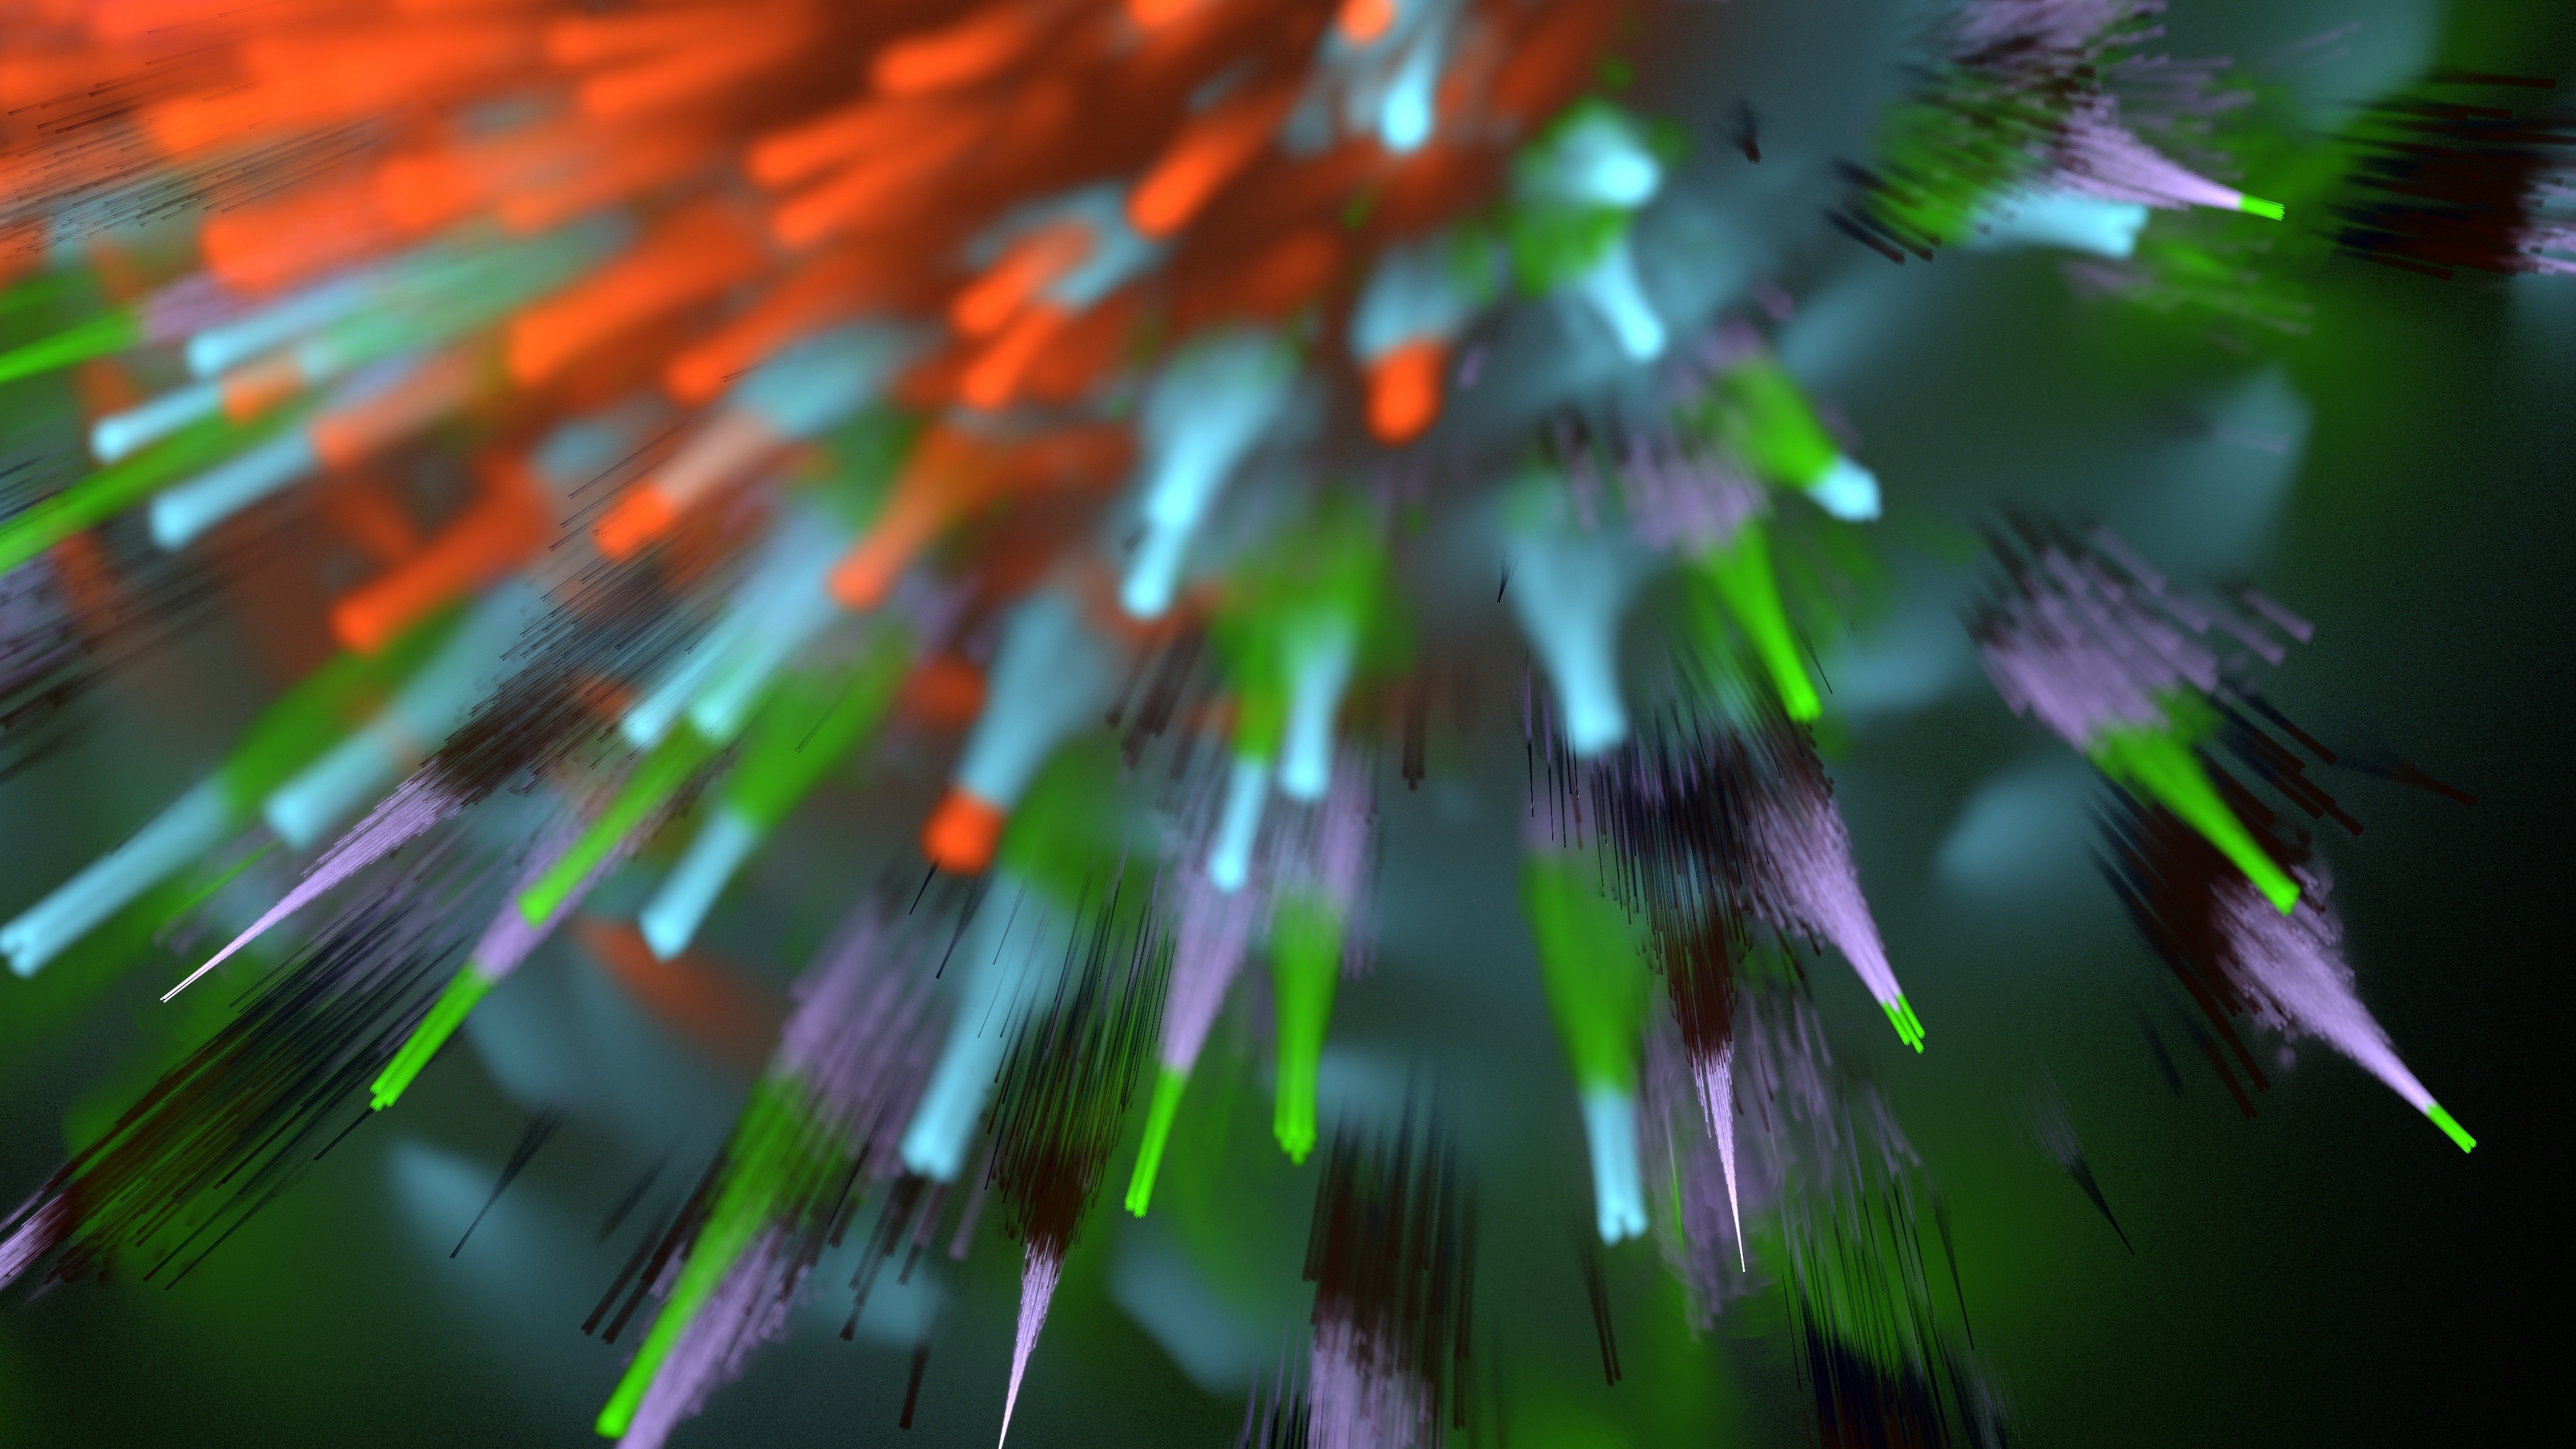 explosion rays fractal colorful 4k 1539369688 - explosion, rays, fractal, colorful 4k - Rays, Fractal, Explosion